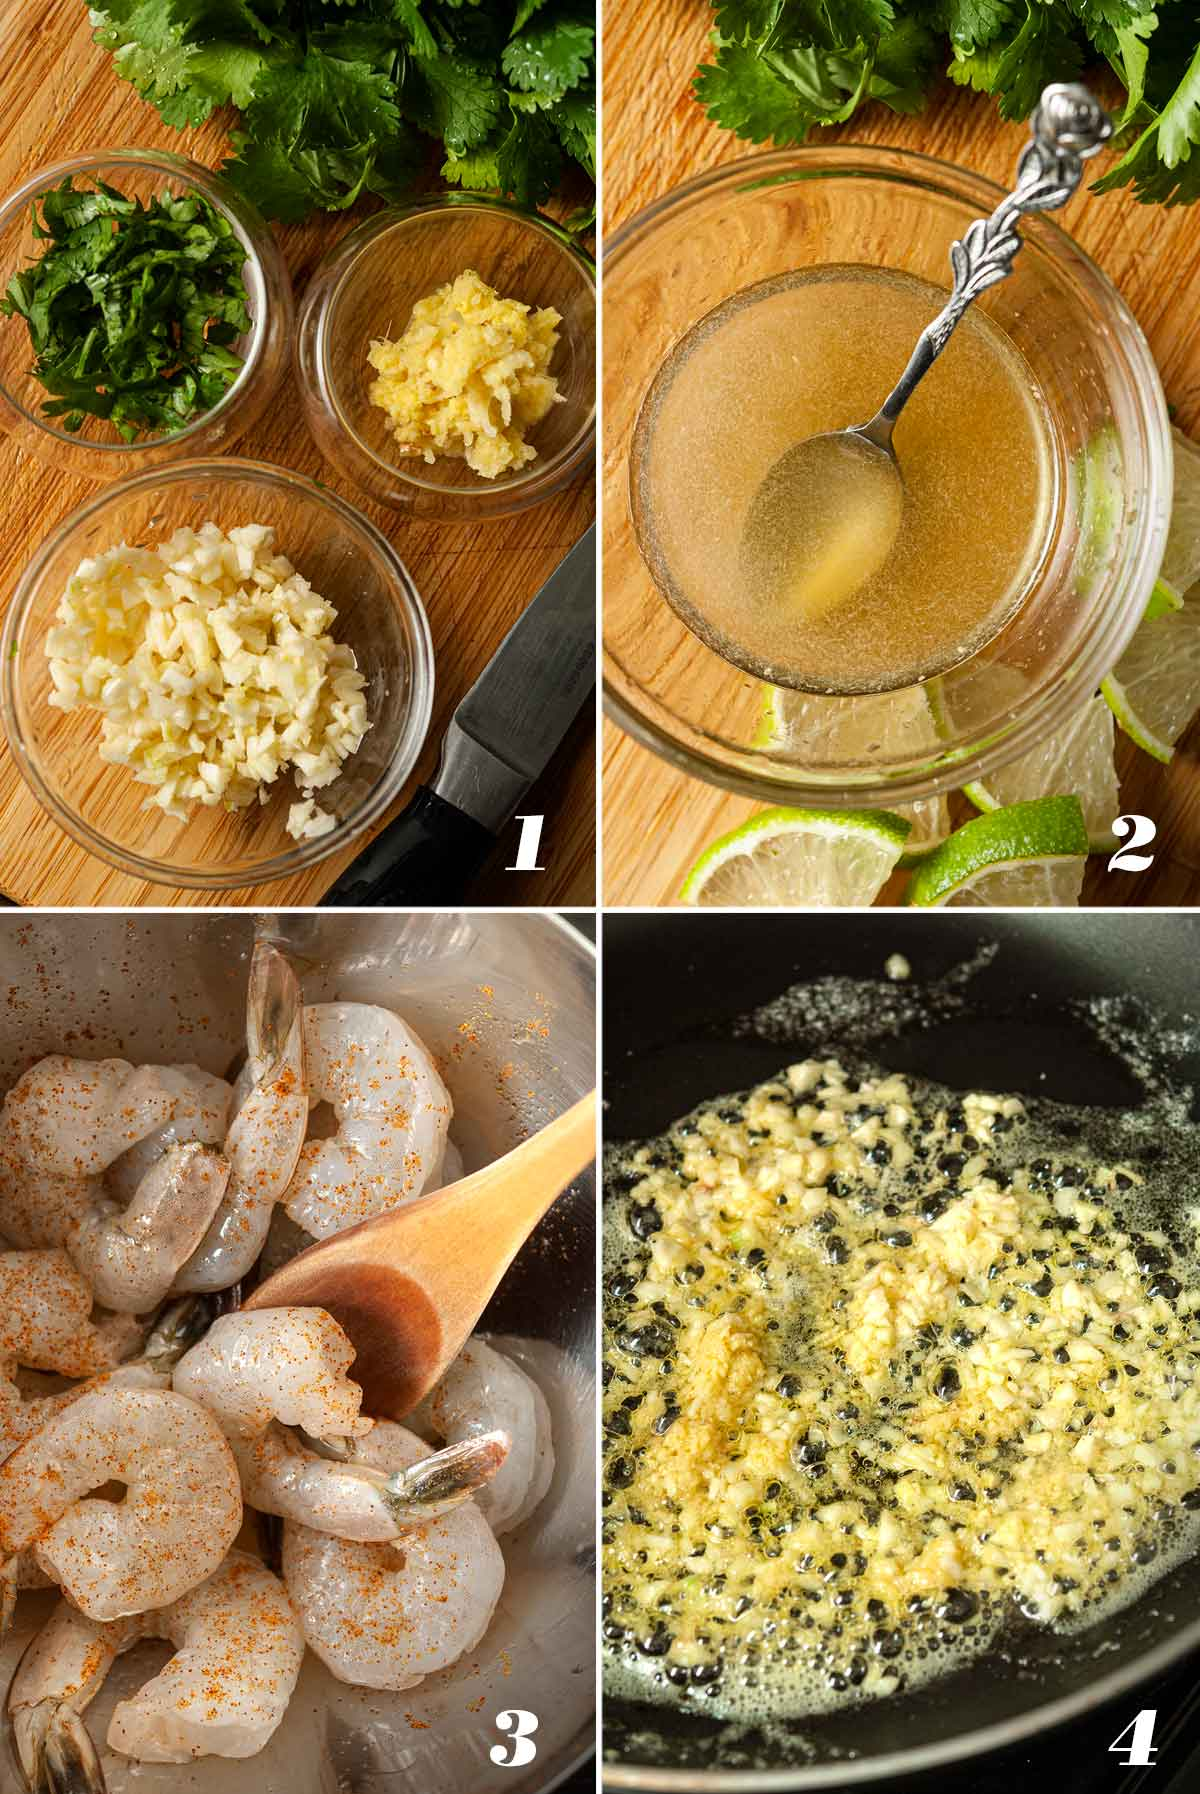 A collage of 4 numbered images showing how to prepare ingredients for honey shrimp.